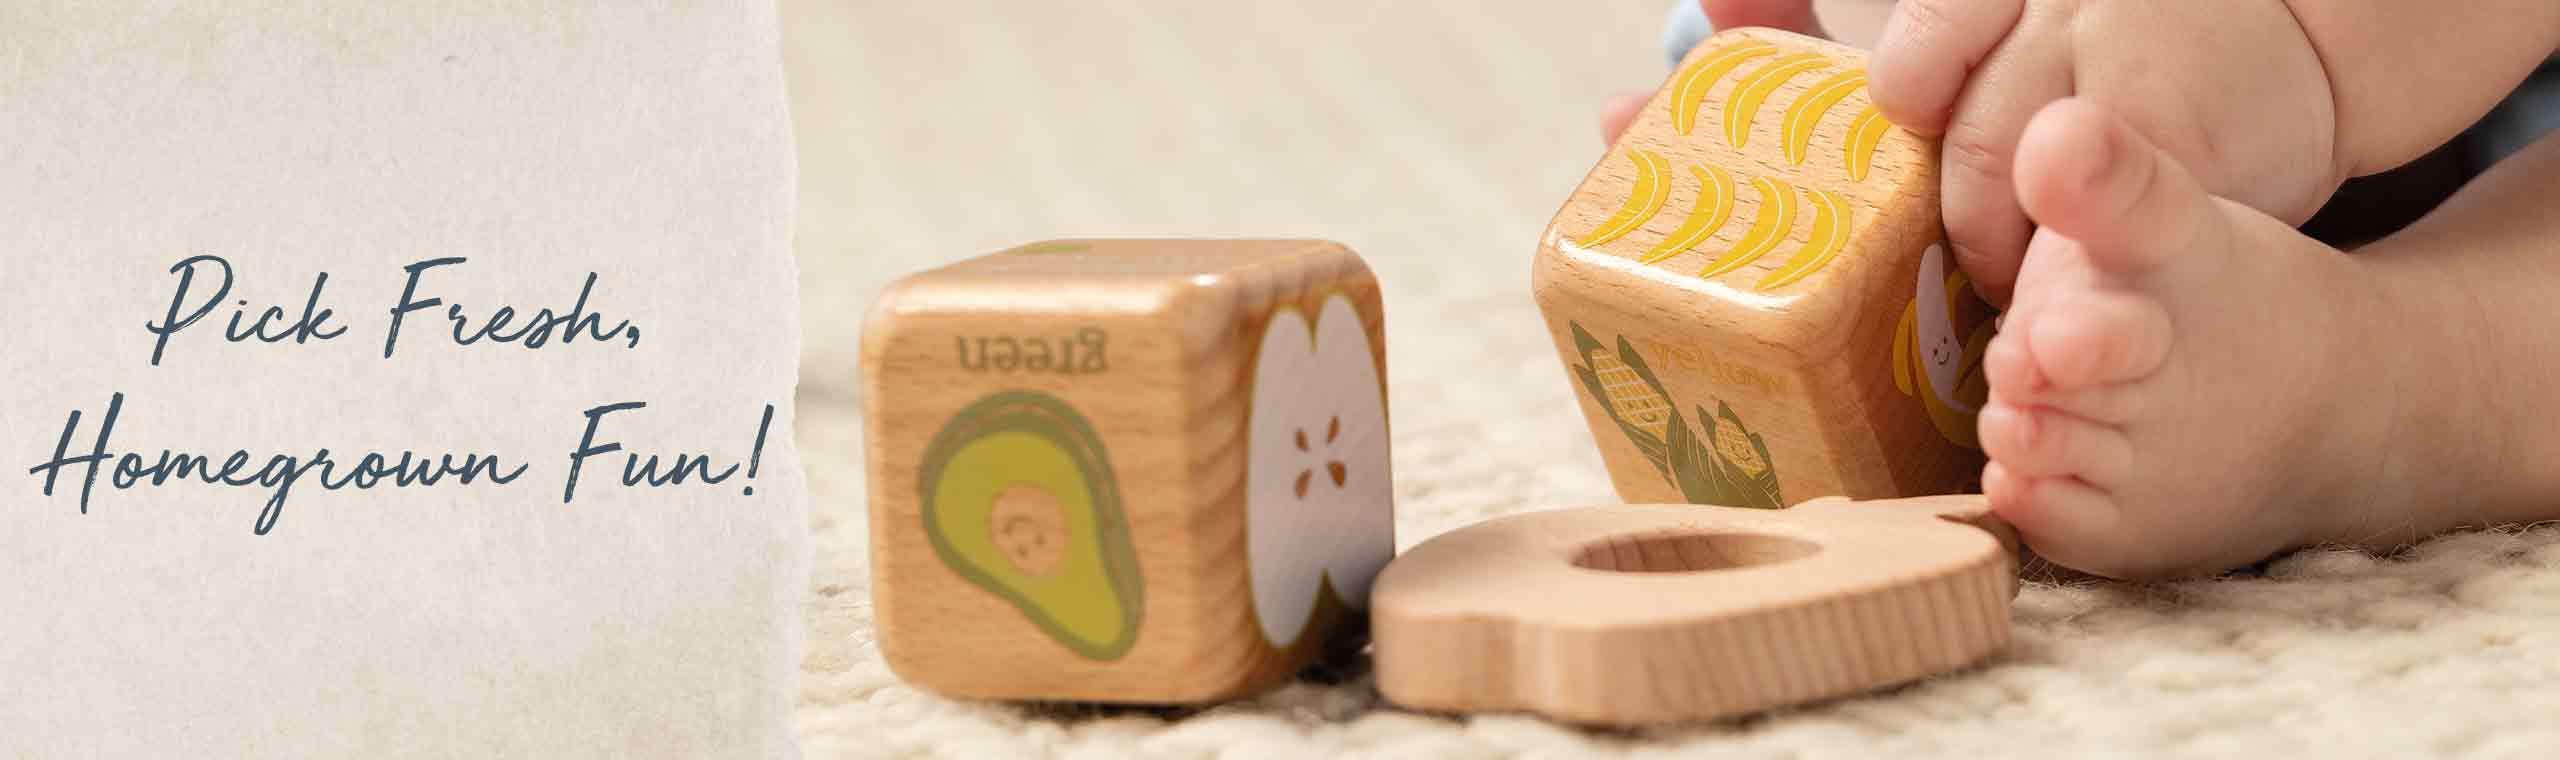 Pick Fresh, Homegrown Fun! a baby playing with wooden block with farm themed prints on them